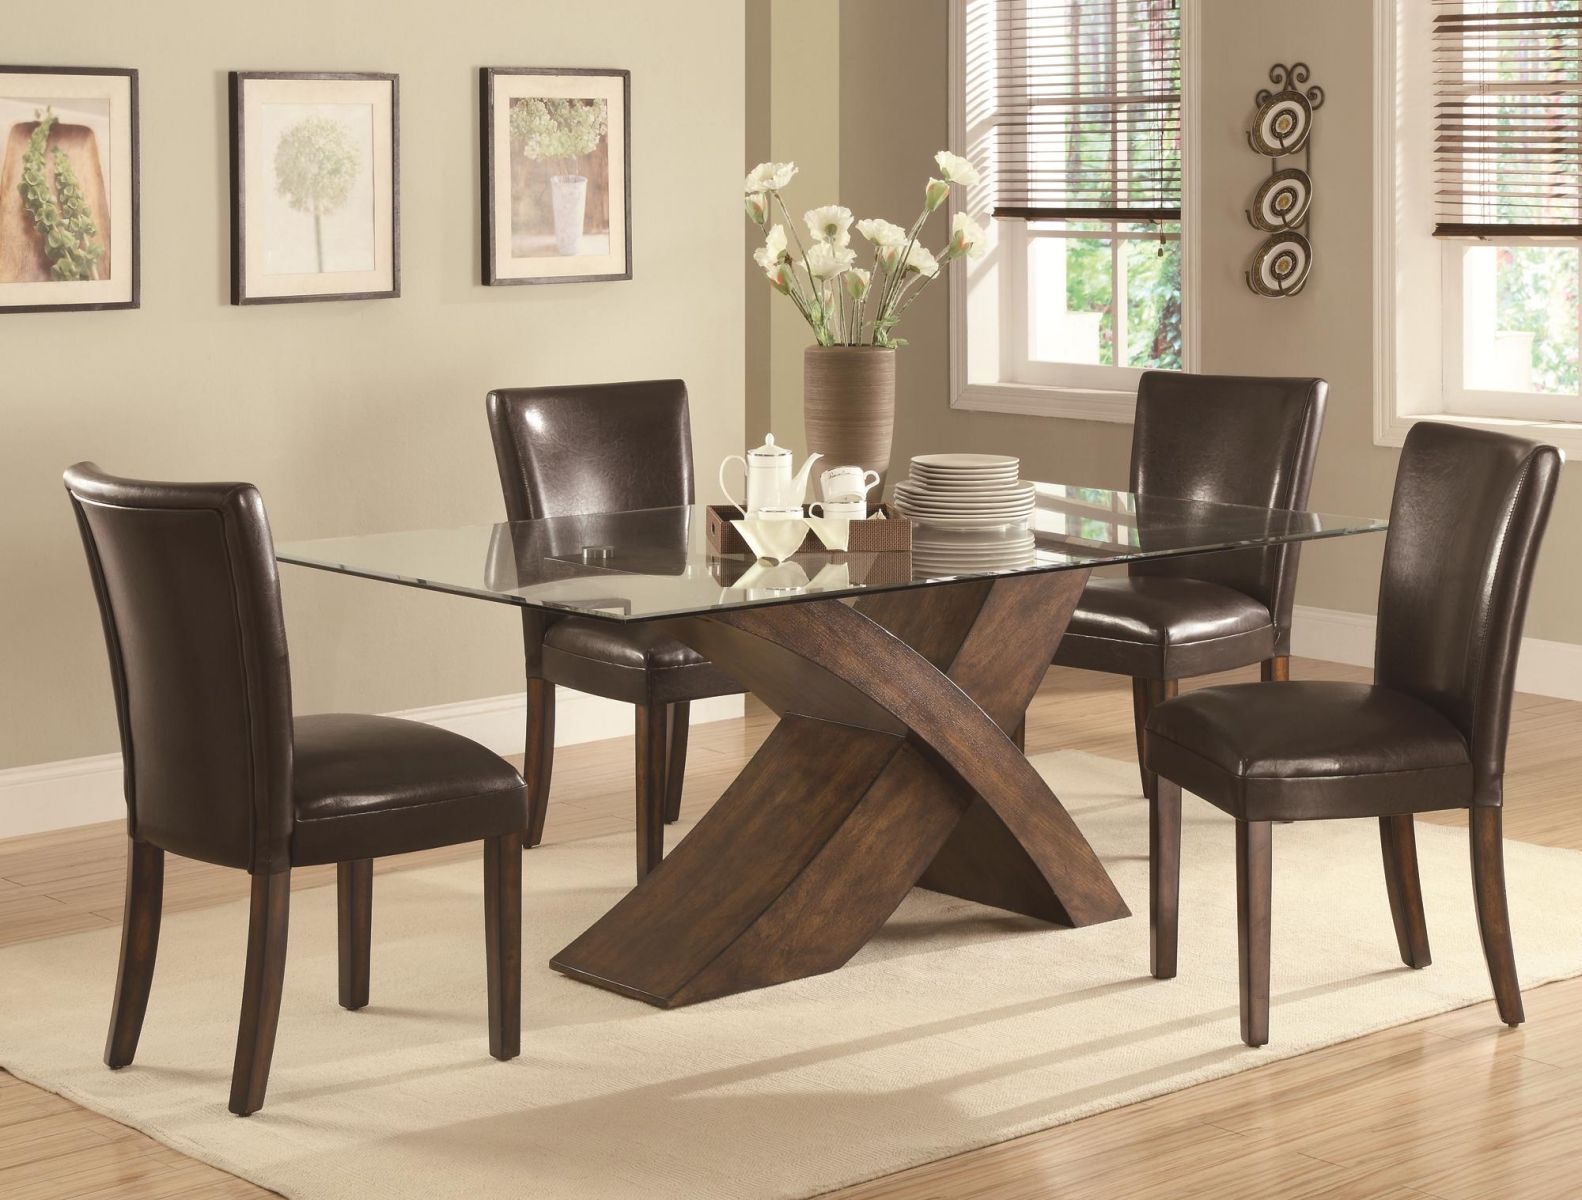 Unique Dinette Long Island New York   Coaster Dining Room Set Price Upon  Request Call (